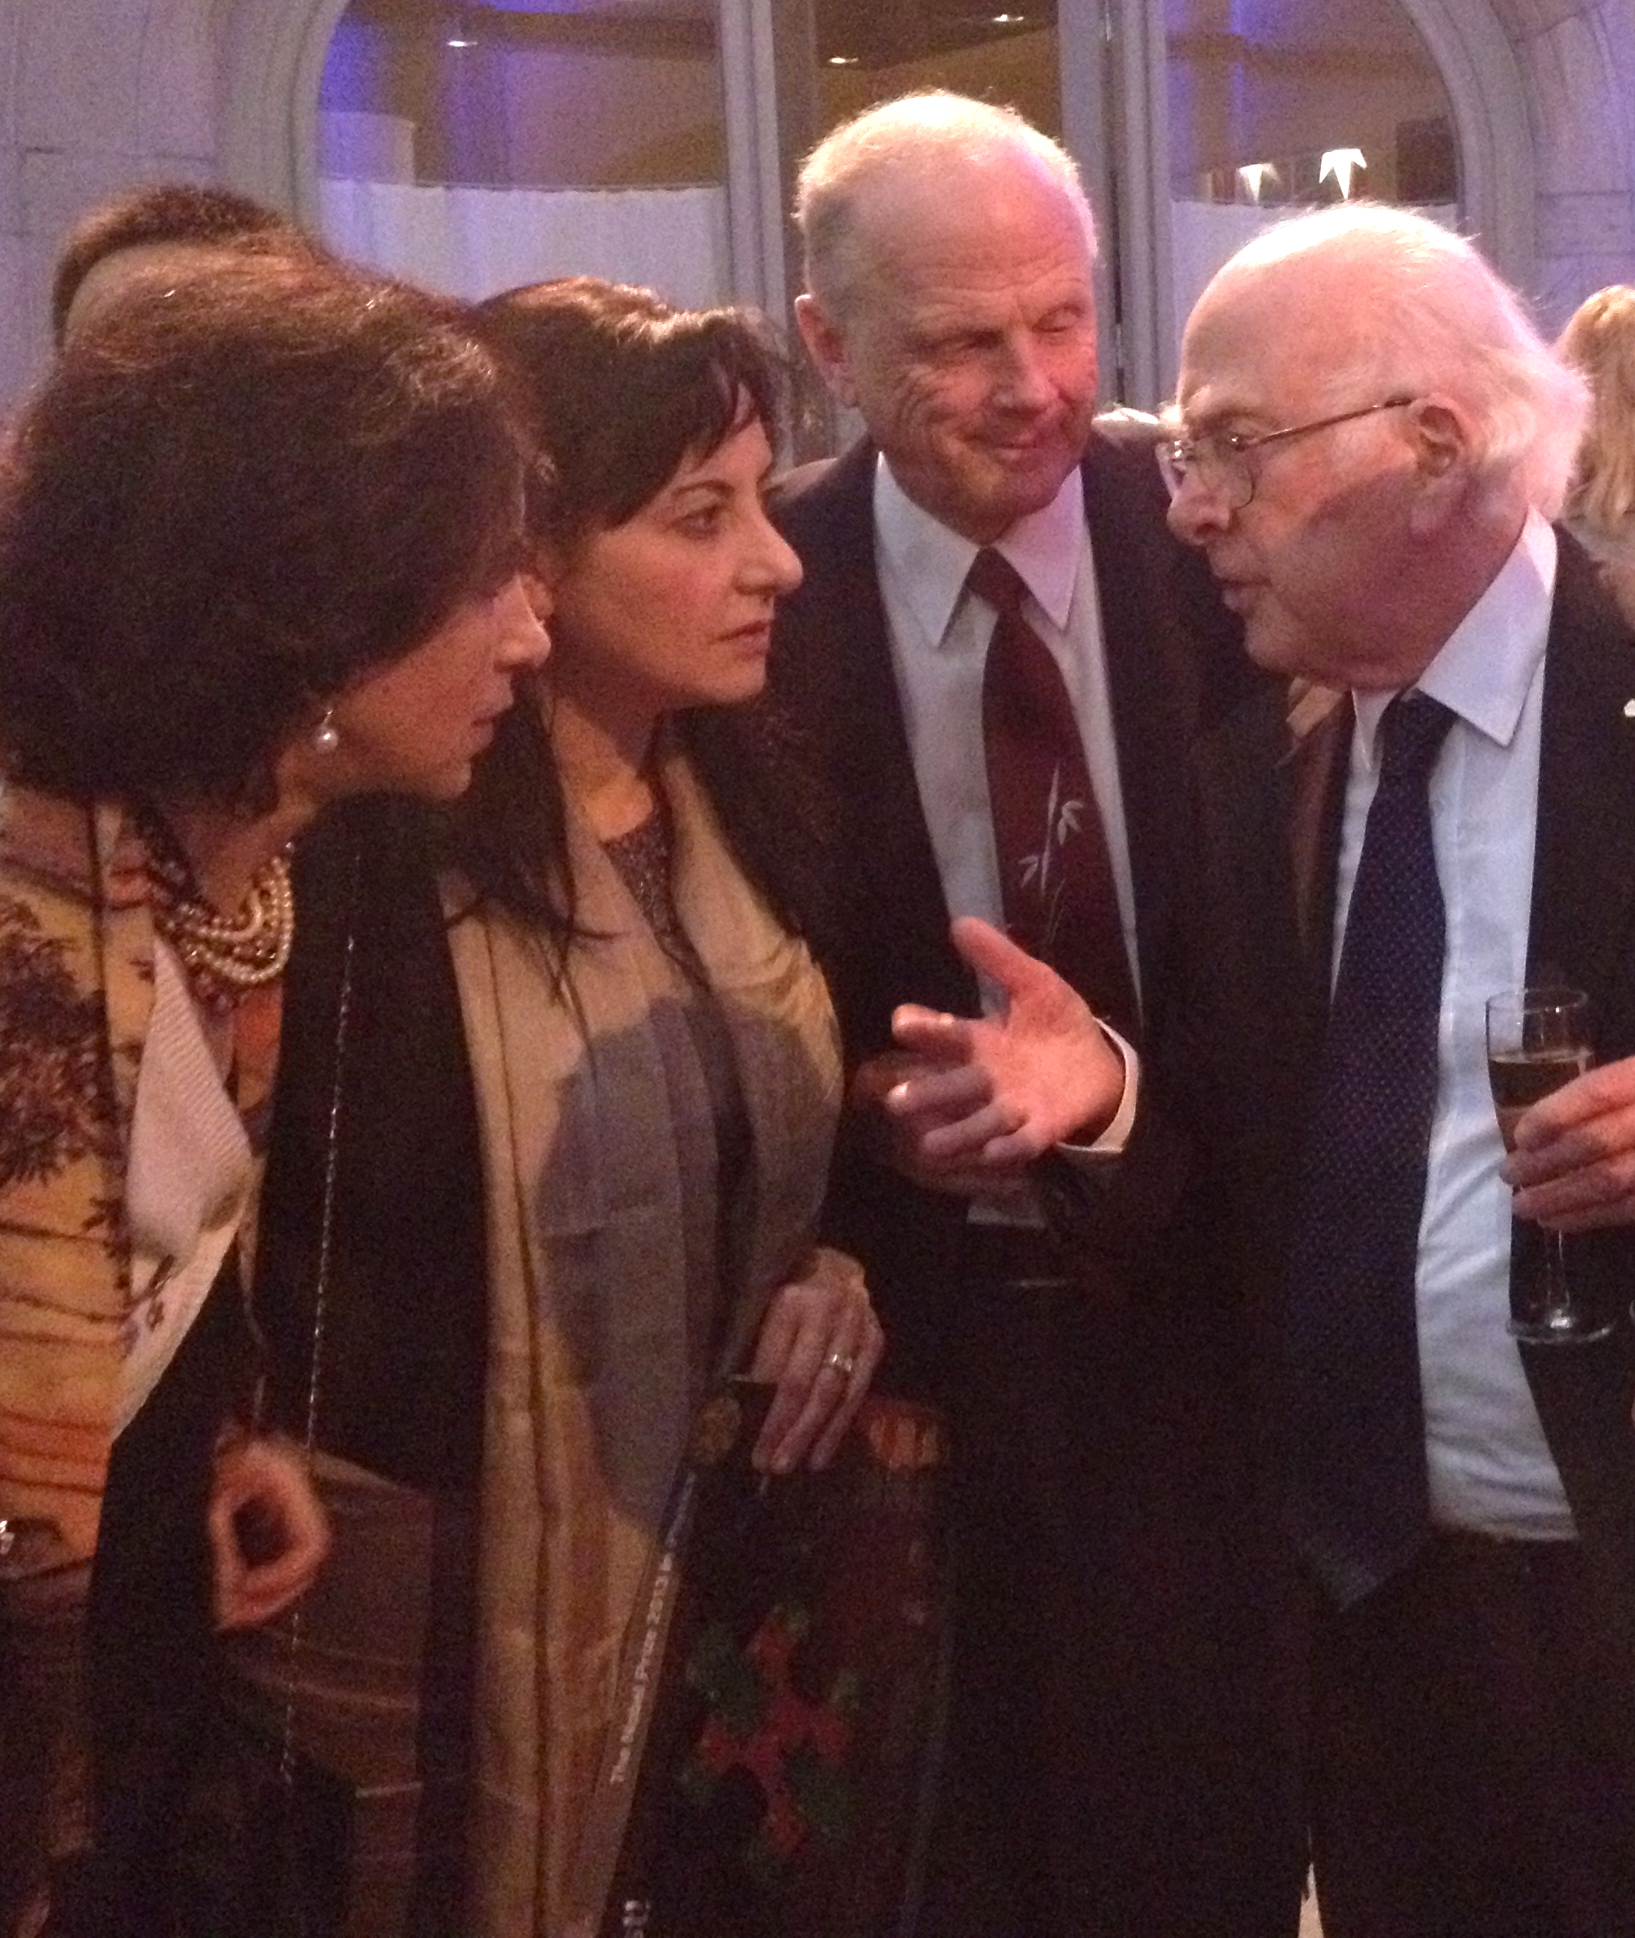 Nobel Prize winner Peter Higgs tells a story to rapt listeners at the Dec. 9 Nobel Prize ceremony reception in Stockholm, Sweden. From left: ATLAS Spokesperson Fabiola Gianotti, Fermilab and University of Chicago scientist Marcela Carena, Physics Nobel Prize Committee Chair Lars Brink, Peter Higgs. Photo courtesy of Marcela Carena, PPD and University of Chicago, and Carlos Wagner, Argonne and University of Chicago